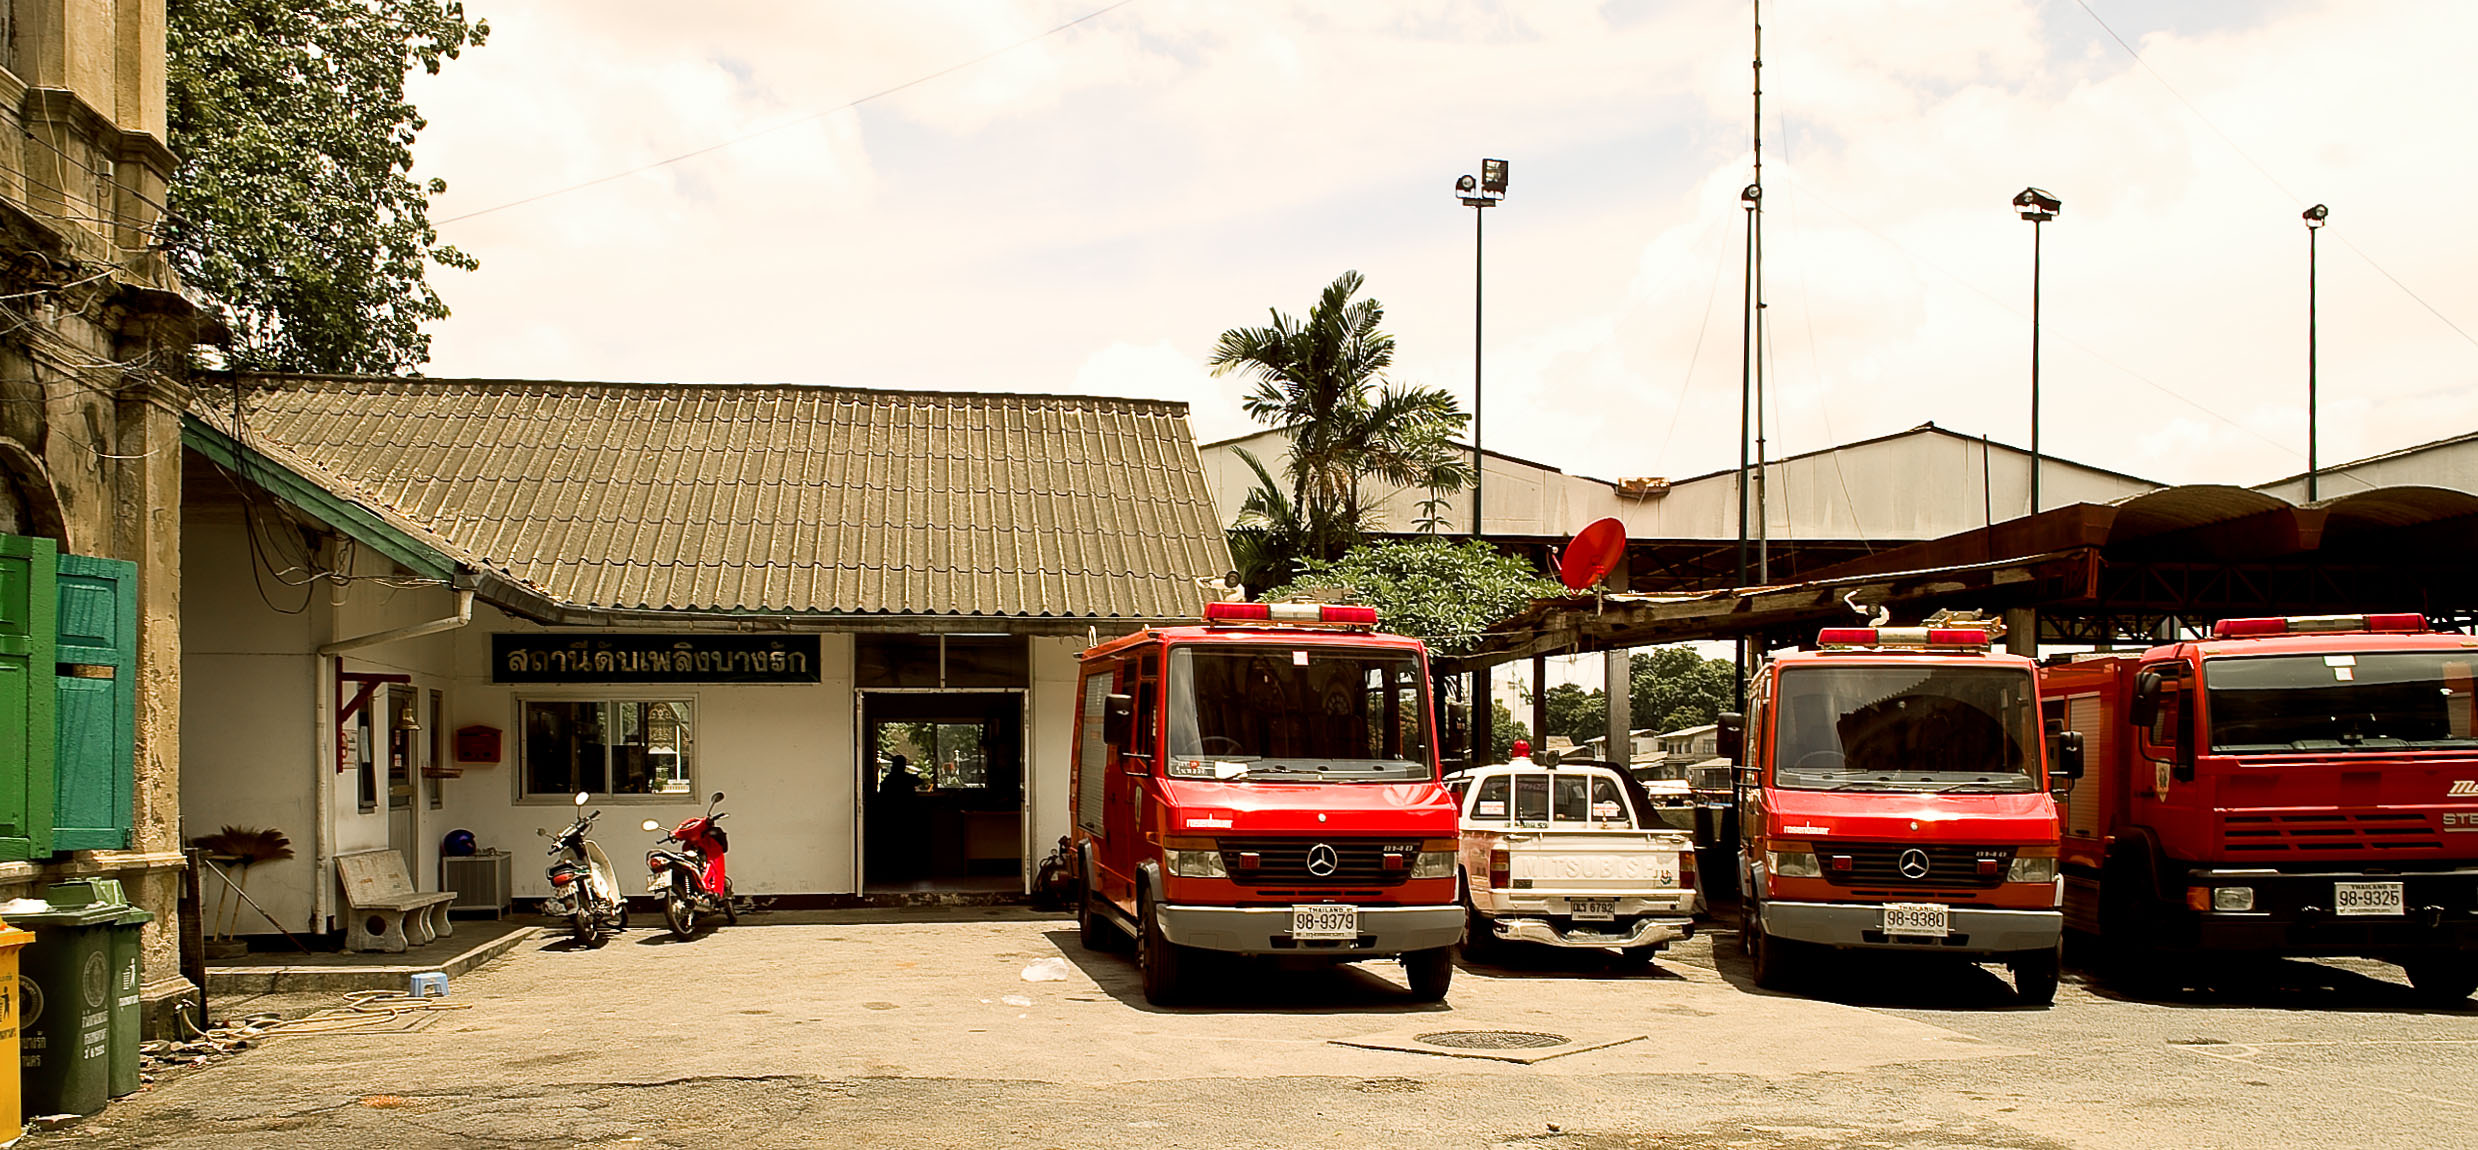 Fire department station